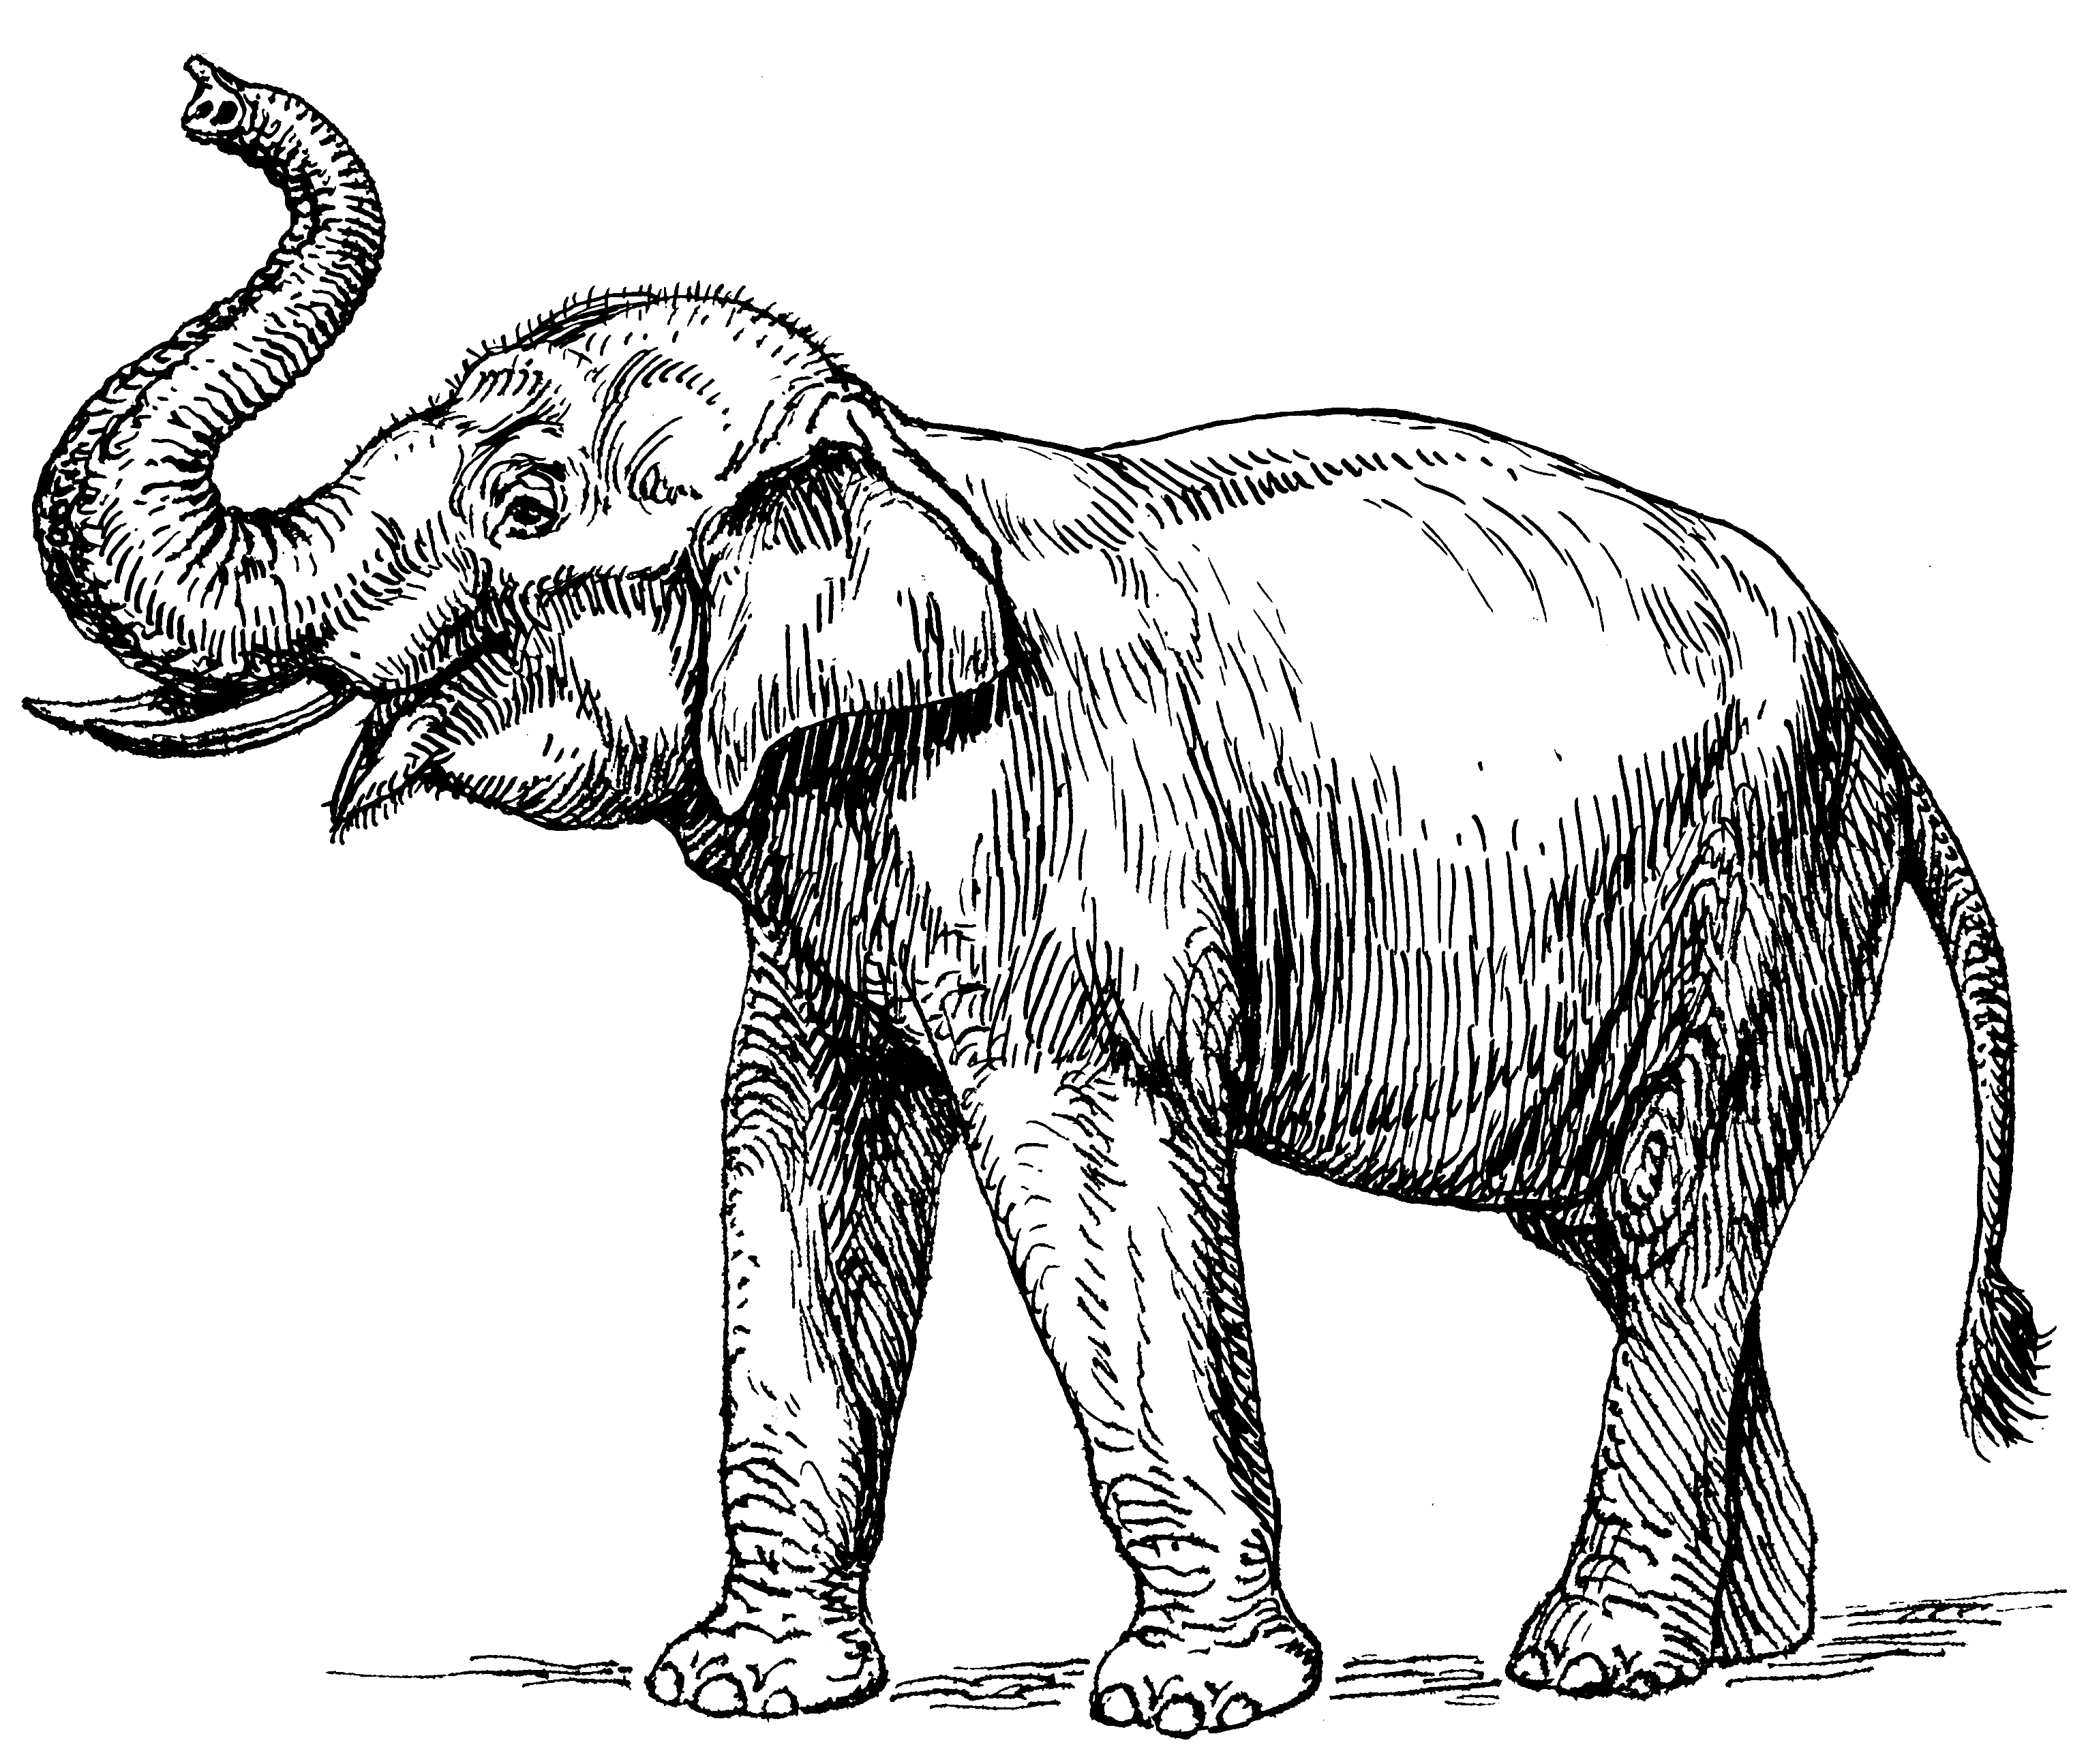 File Indian Elephant Psf Png Wikimedia Commons Elephant cartoon, baby elephant transparent background png clipart. https commons wikimedia org wiki file indian elephant psf png